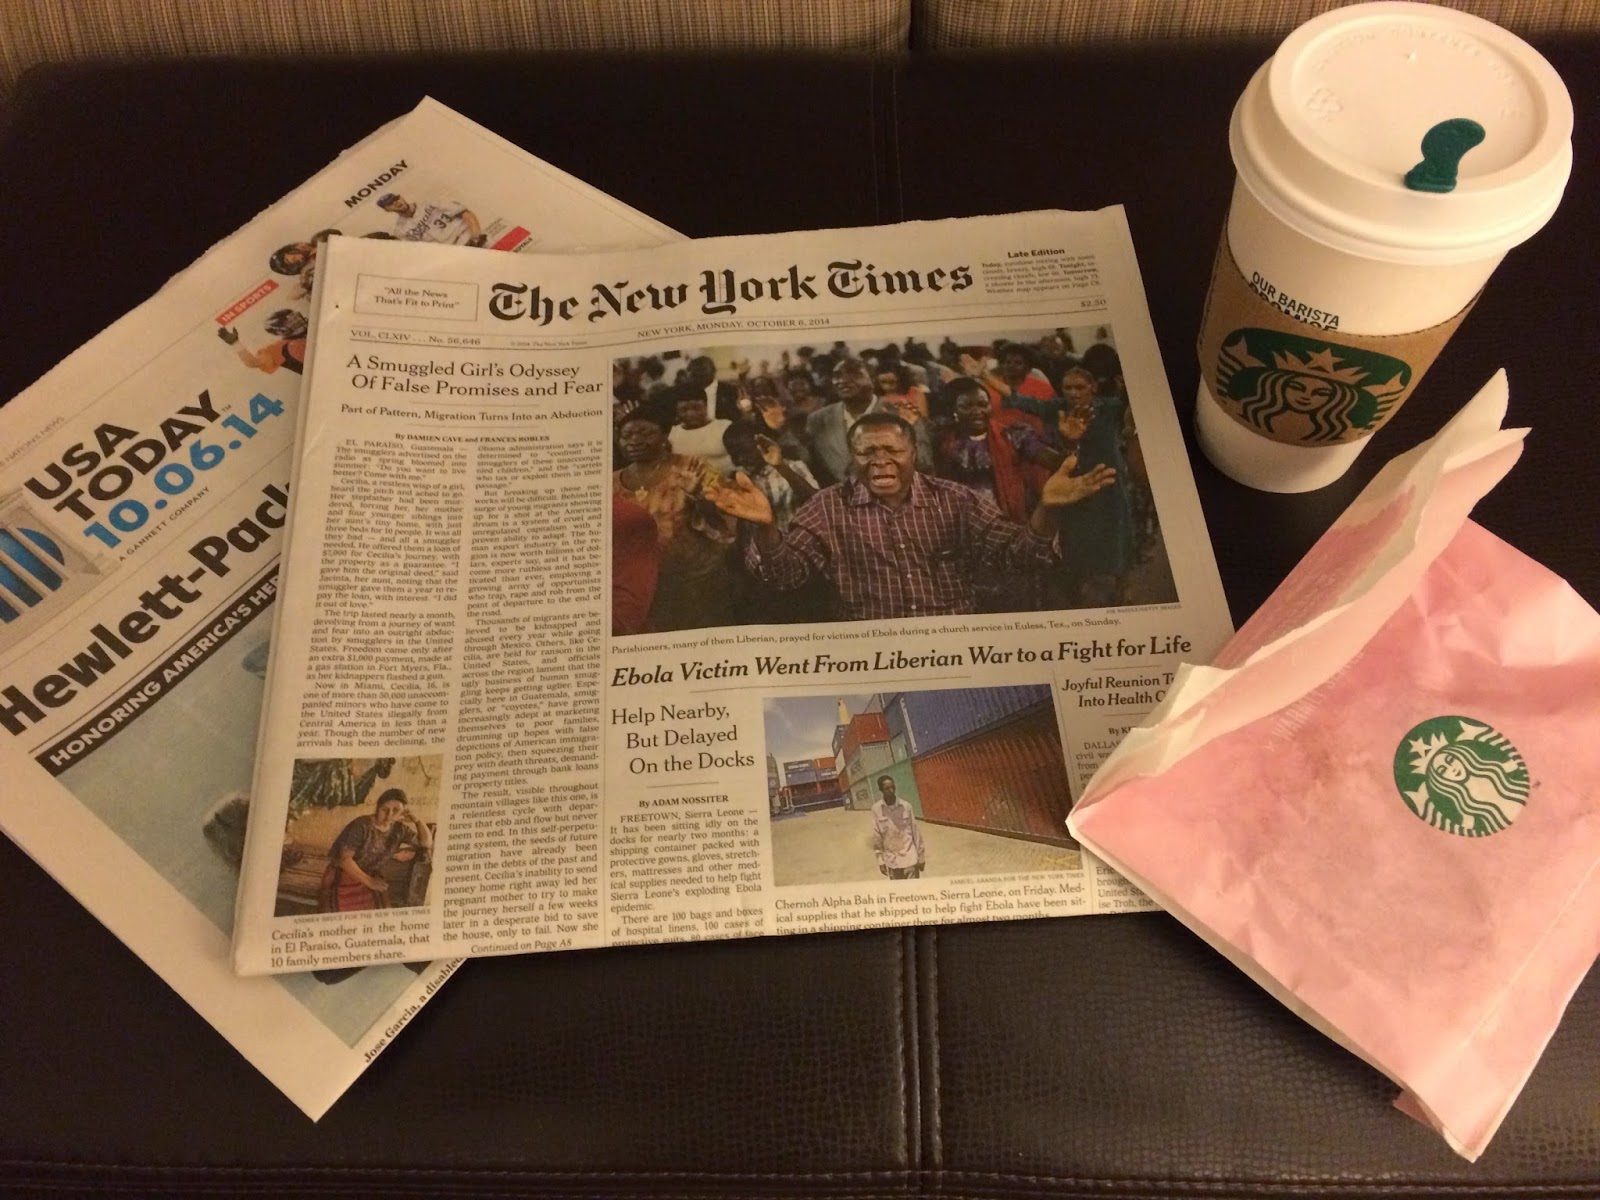 The New York Times with my morning coffee